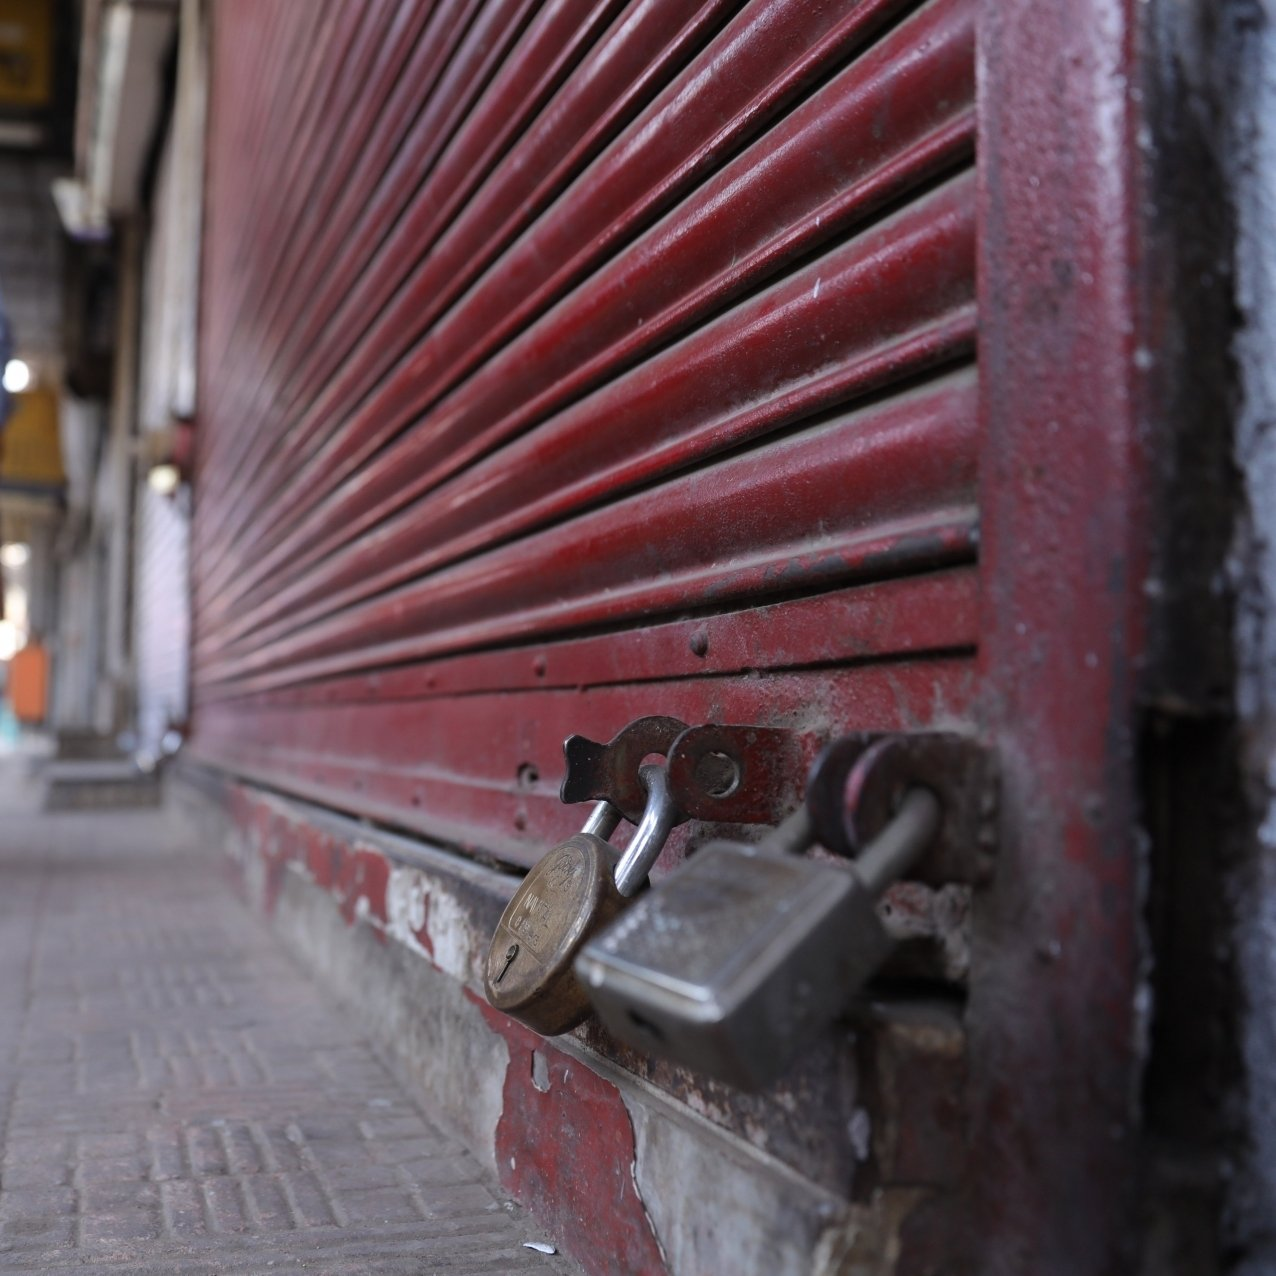 Delhi traders to observe voluntary lockdown for one more week: CAIT